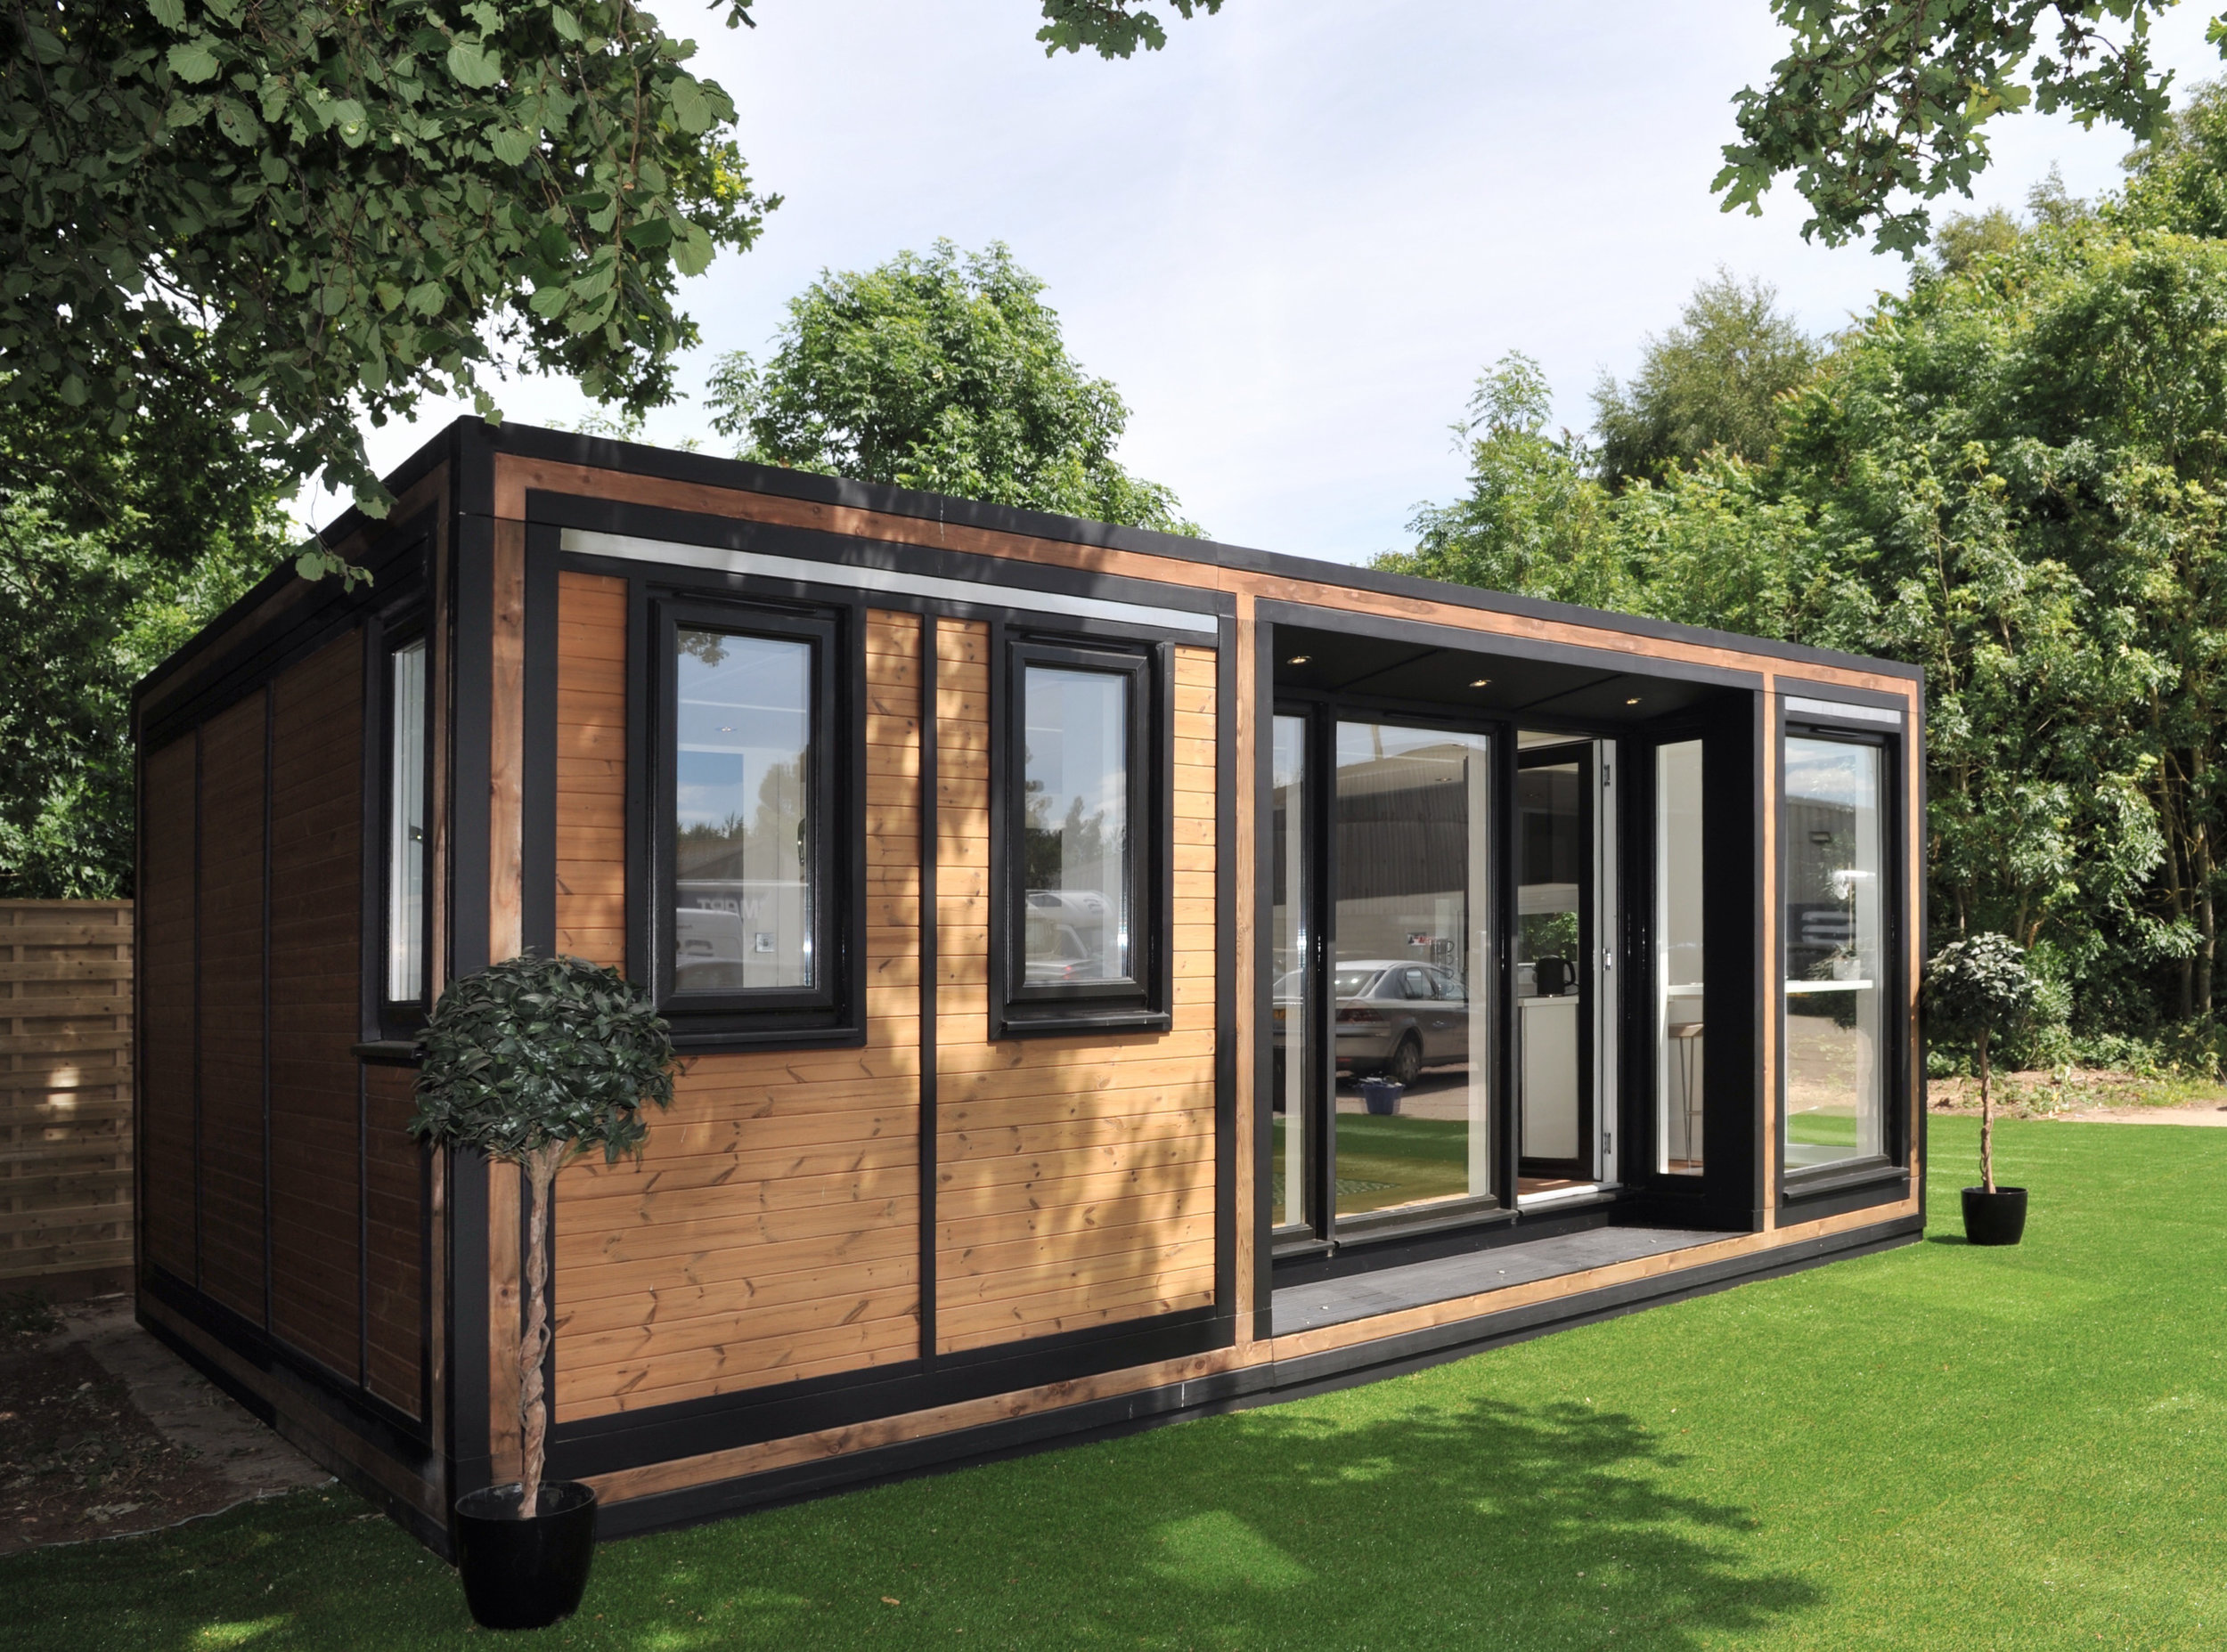 ZEDBOX 635  (6 x 3.5)  Internal Size: 6401 x 3791  External Size: 6871 x 4261  Bed Options: Single or Double  Kitchen Options: Micro or Premier  Wet Room Options: Yes  Portico: Yes  Price:  £32,000    Optional Extras    Request Zedbox Catalogue